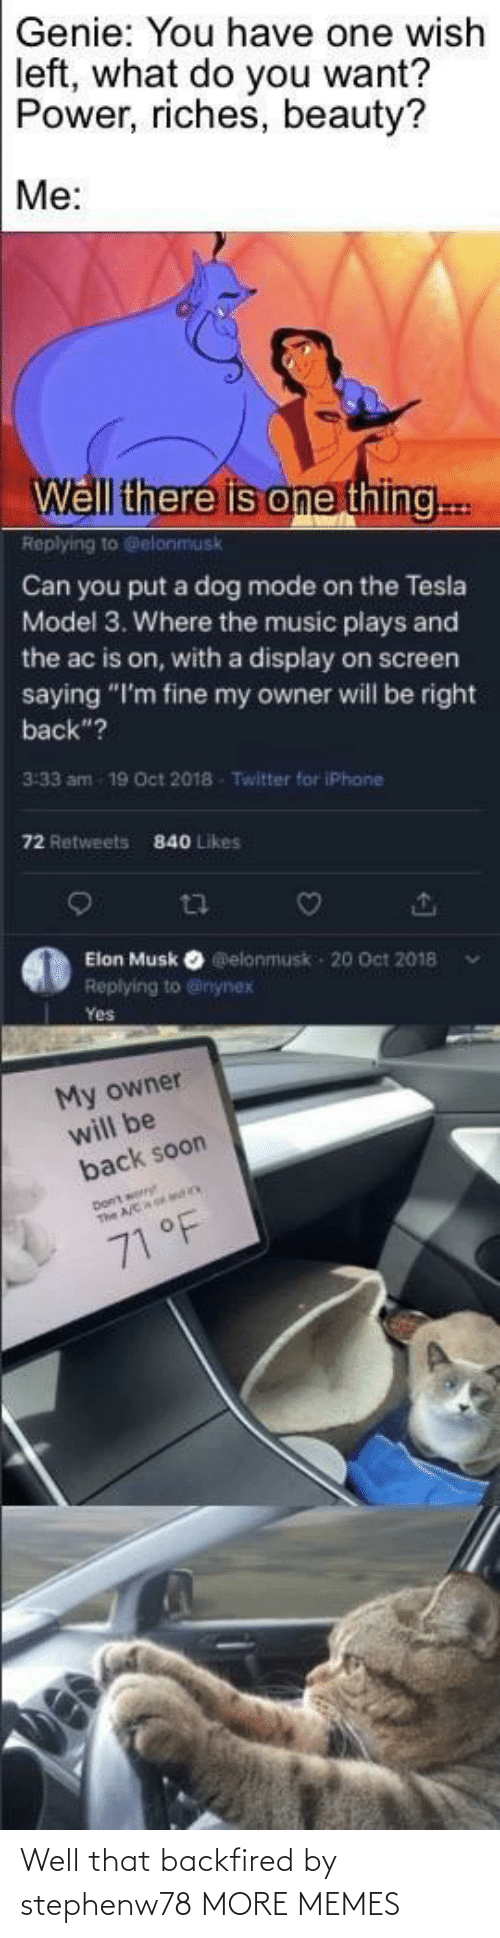 "Retweets: Genie: You have one wish  left, what do you want?  Power, riches, beauty?  Me:  Well there is one thing..  Replying to Gelonmusk  Can you put a dog mode on the Tesla  Model 3. Where the music plays and  the ac is on, with a display on screen  saying ""I'm fine my owner will be right  back""?  3:33 am  19 Oct 2018  Twitter for iPhane  72 Retweets  840 Likes  Elon Musk O elonmusk - 20 Oct 2018  Replying to @inynex  Yes  My owner  will be  back soon  71 °F Well that backfired by stephenw78 MORE MEMES"